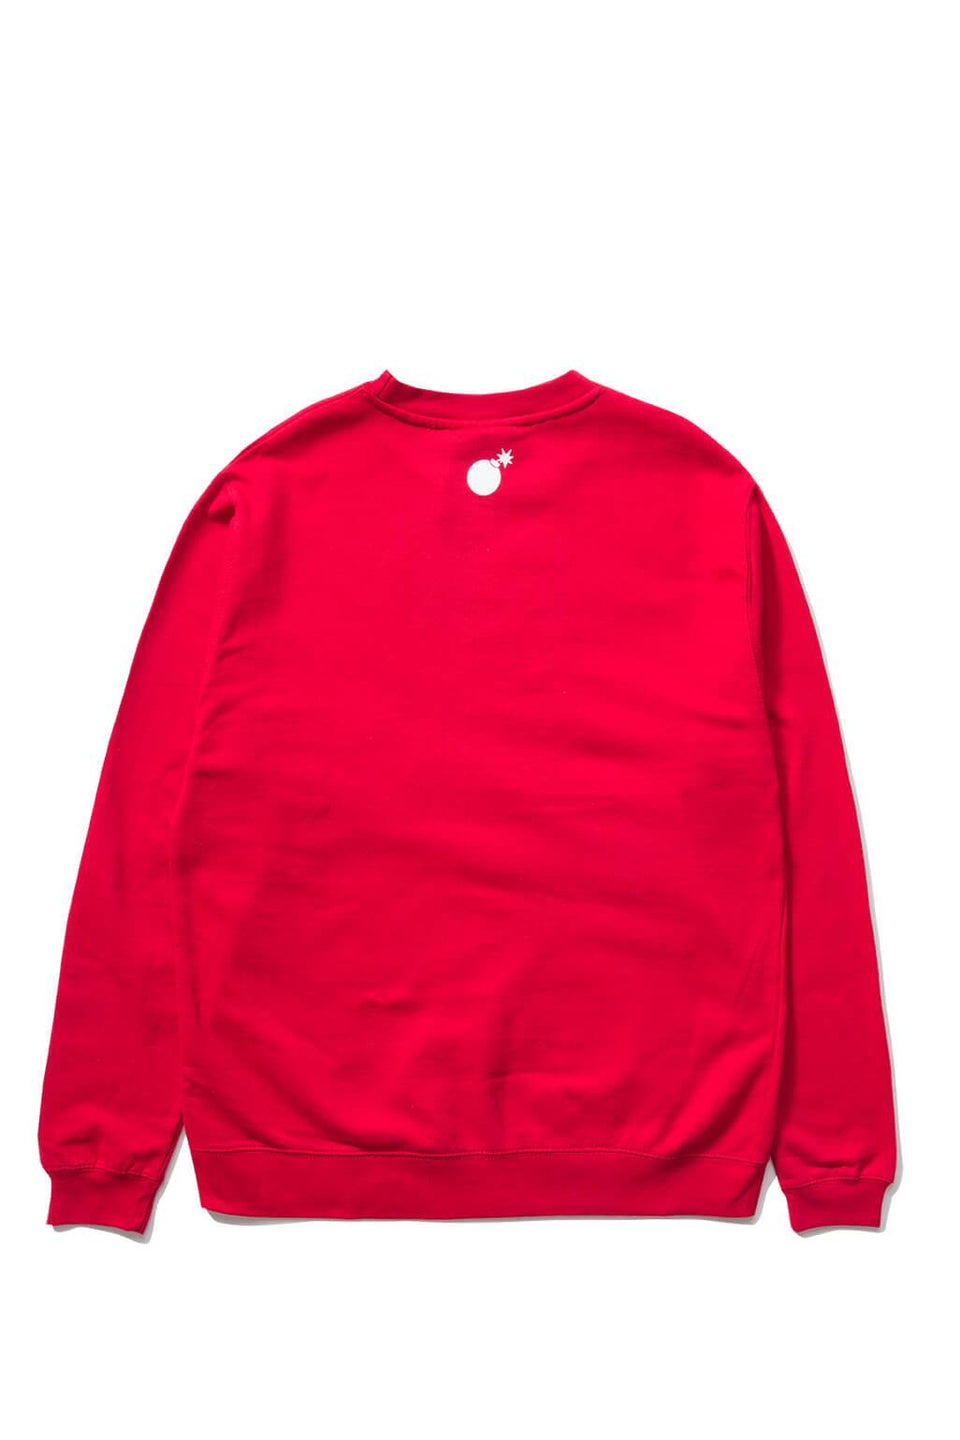 The Hundreds Forever Bar Crewneck Sweatshirt Red Back